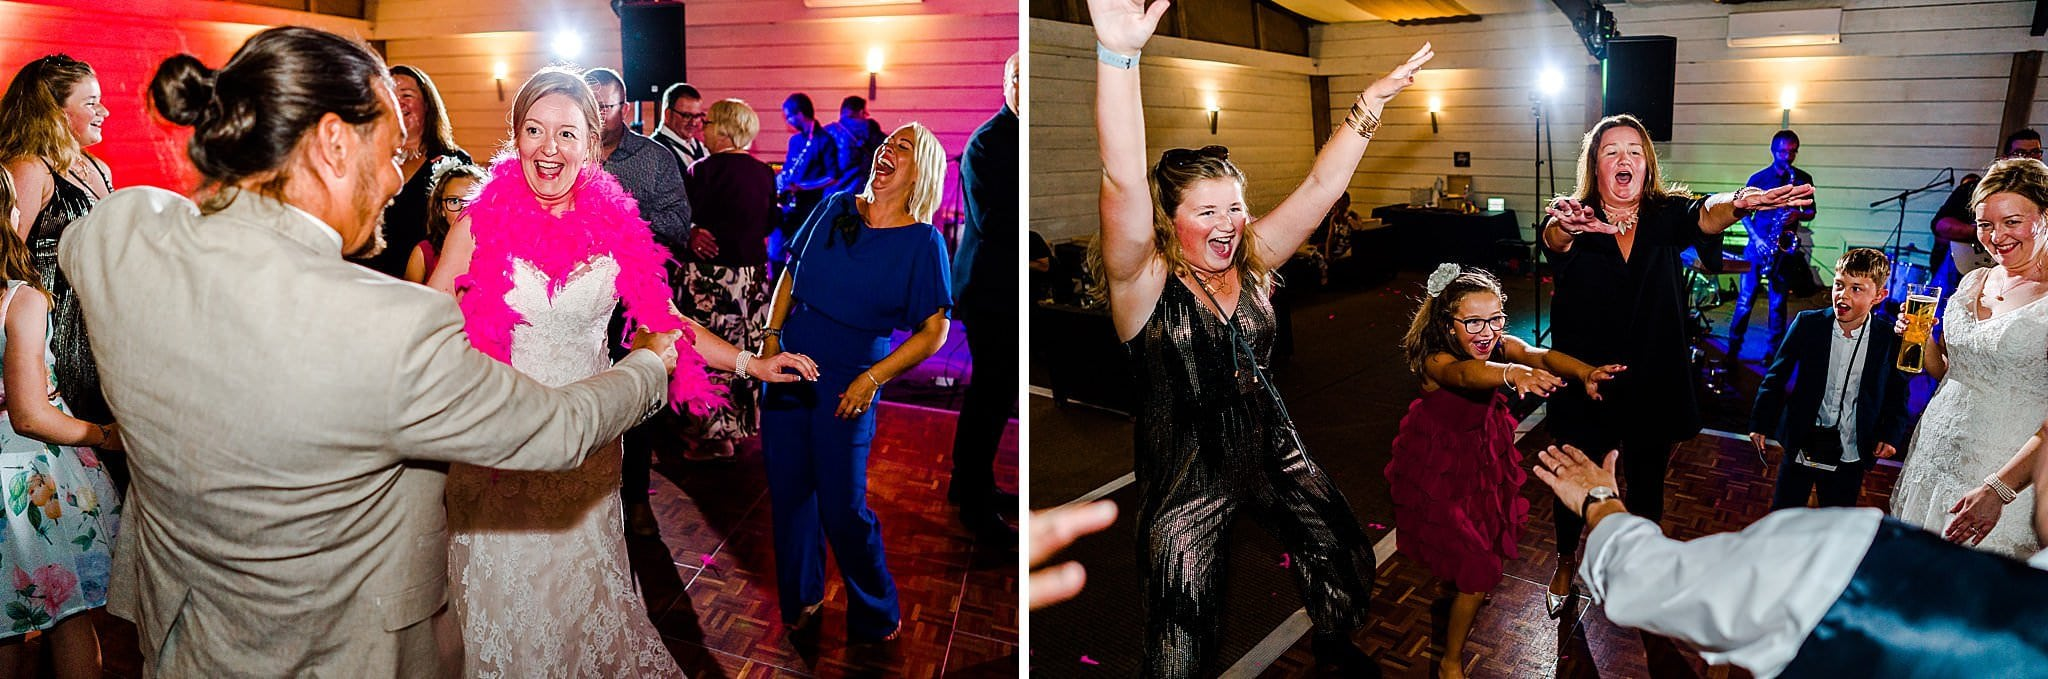 Wedding guests really enjoying themselves dancing at Newton House Barns